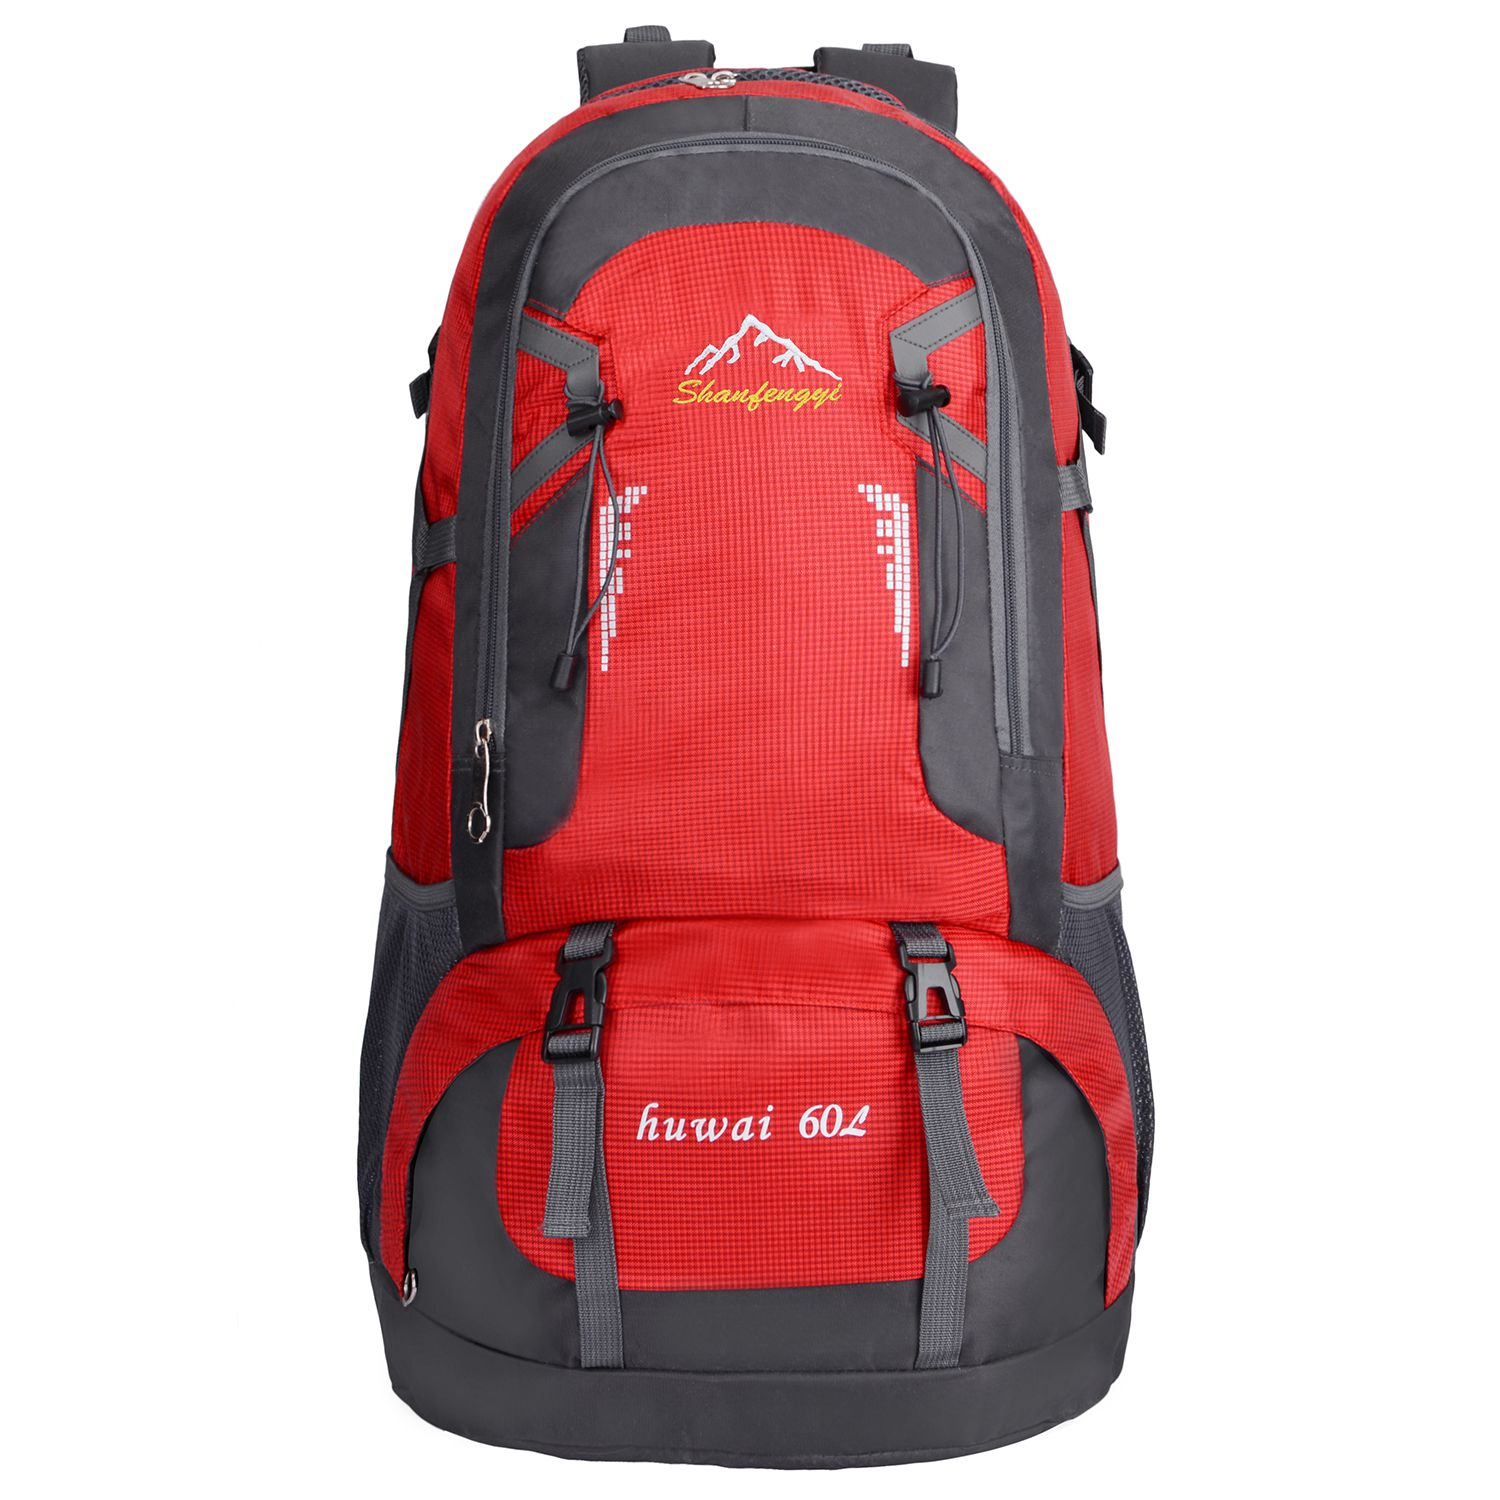 60L Waterproof Outdoor Backpack Sports Bag for Hiking Travel Mountaineering Rock